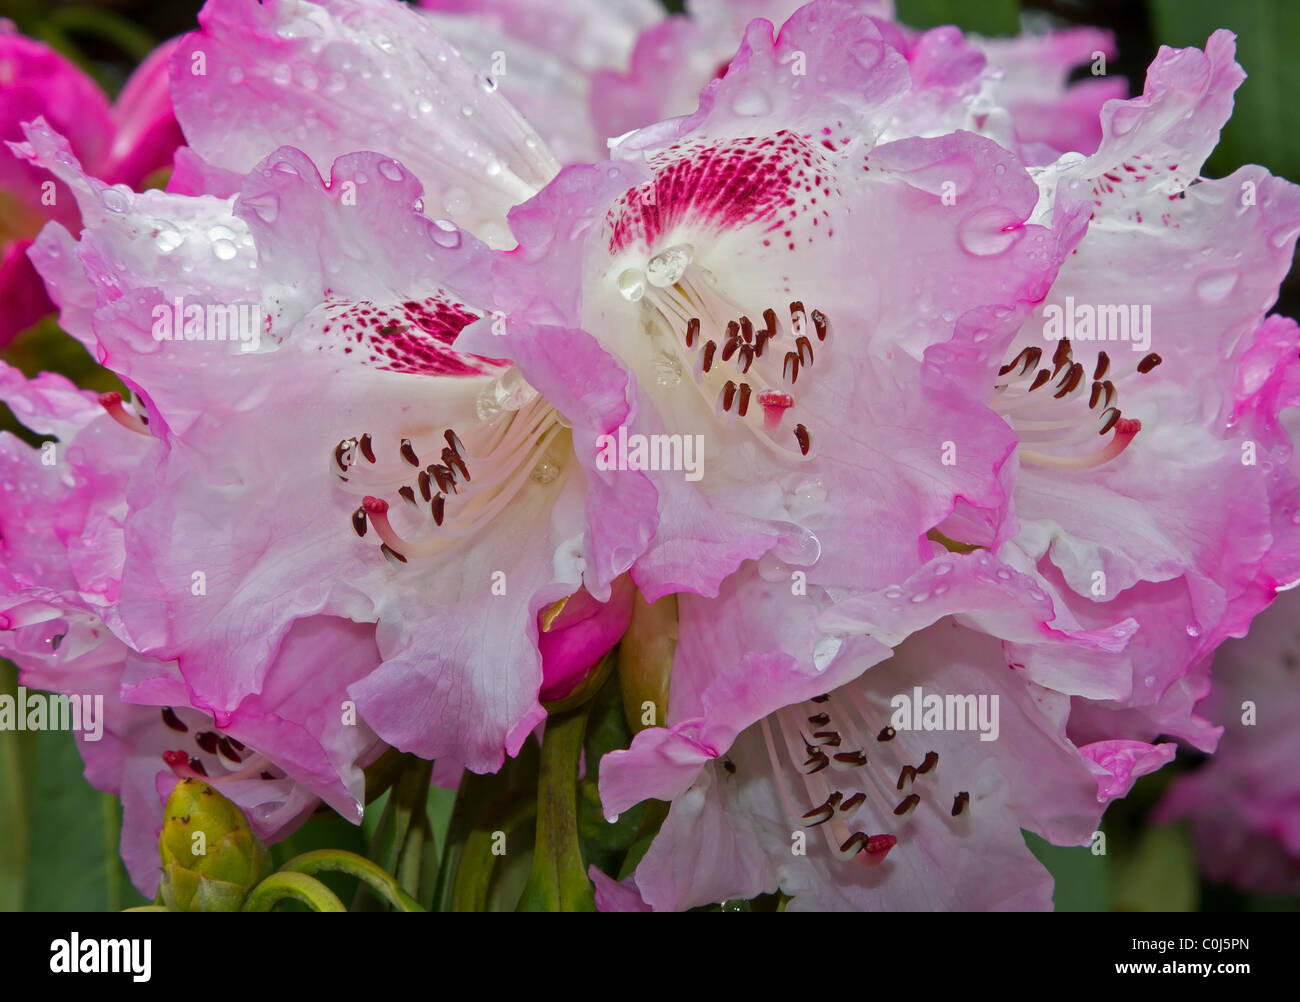 THe Pink Flowers of the Rhododendron - Stock Image